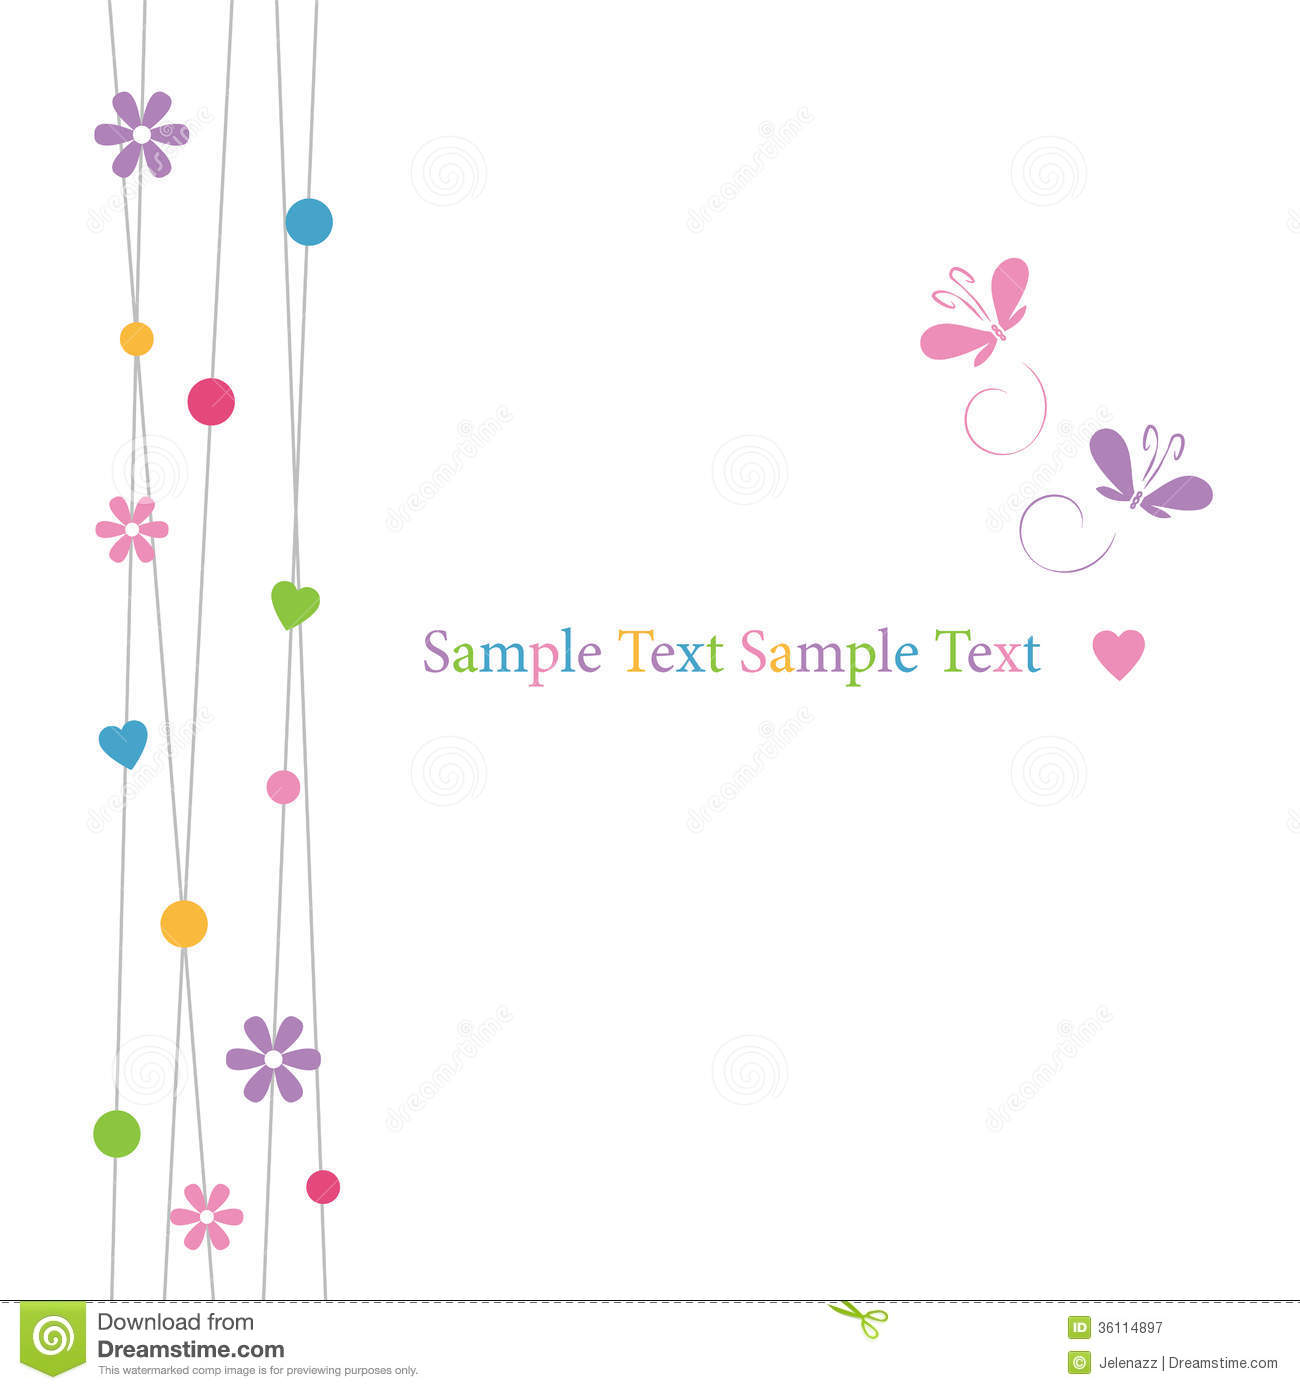 Cute hearts flowers dots and butterflies greeting card stock royalty free stock photo kristyandbryce Choice Image